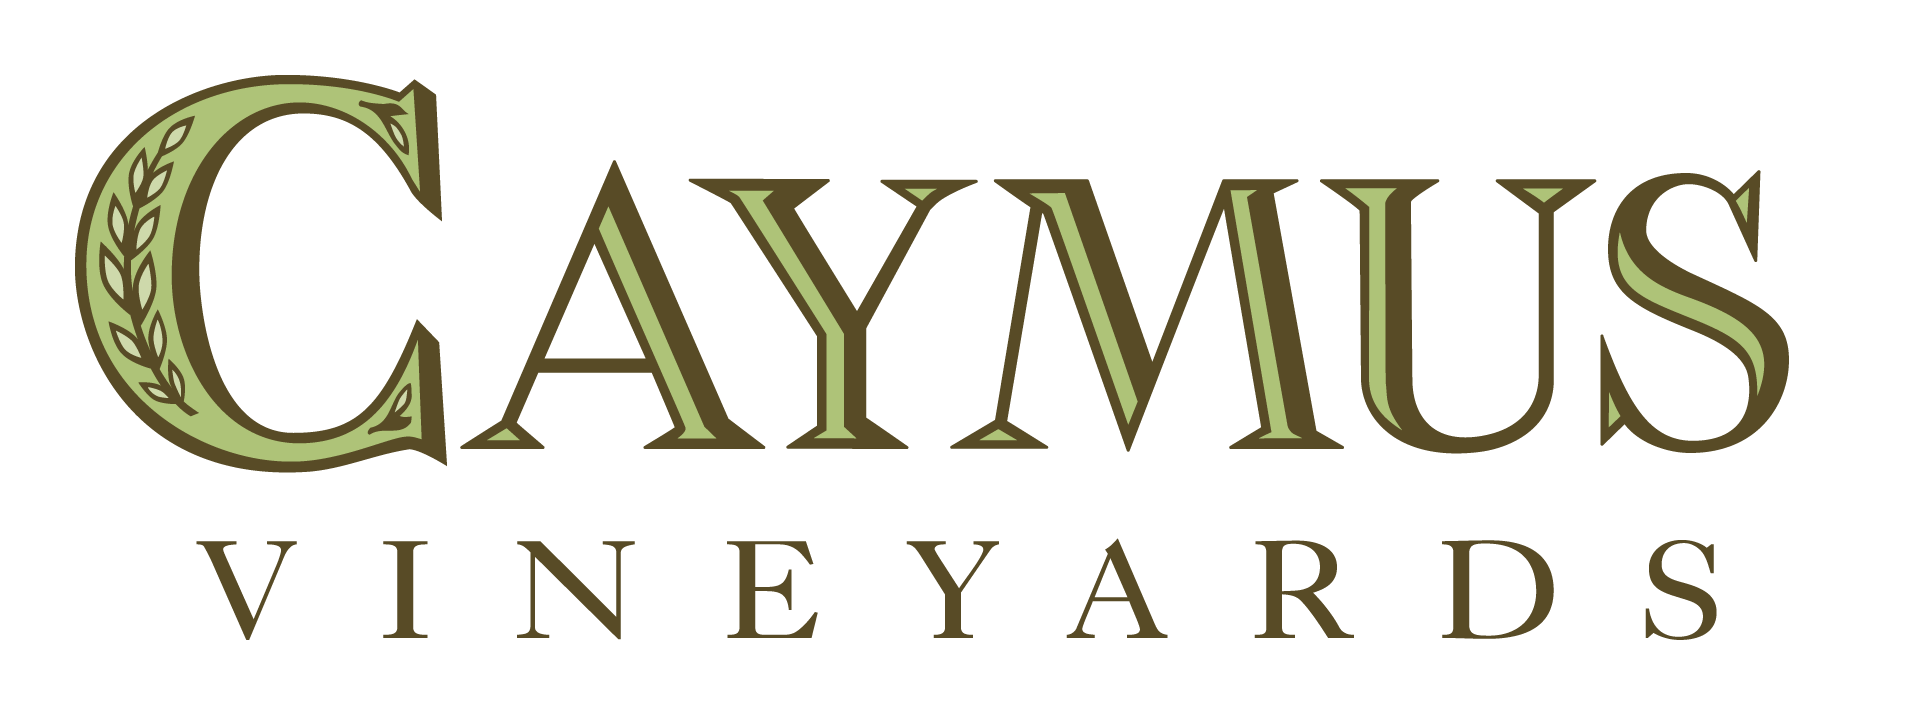 Caymus_Logo.png